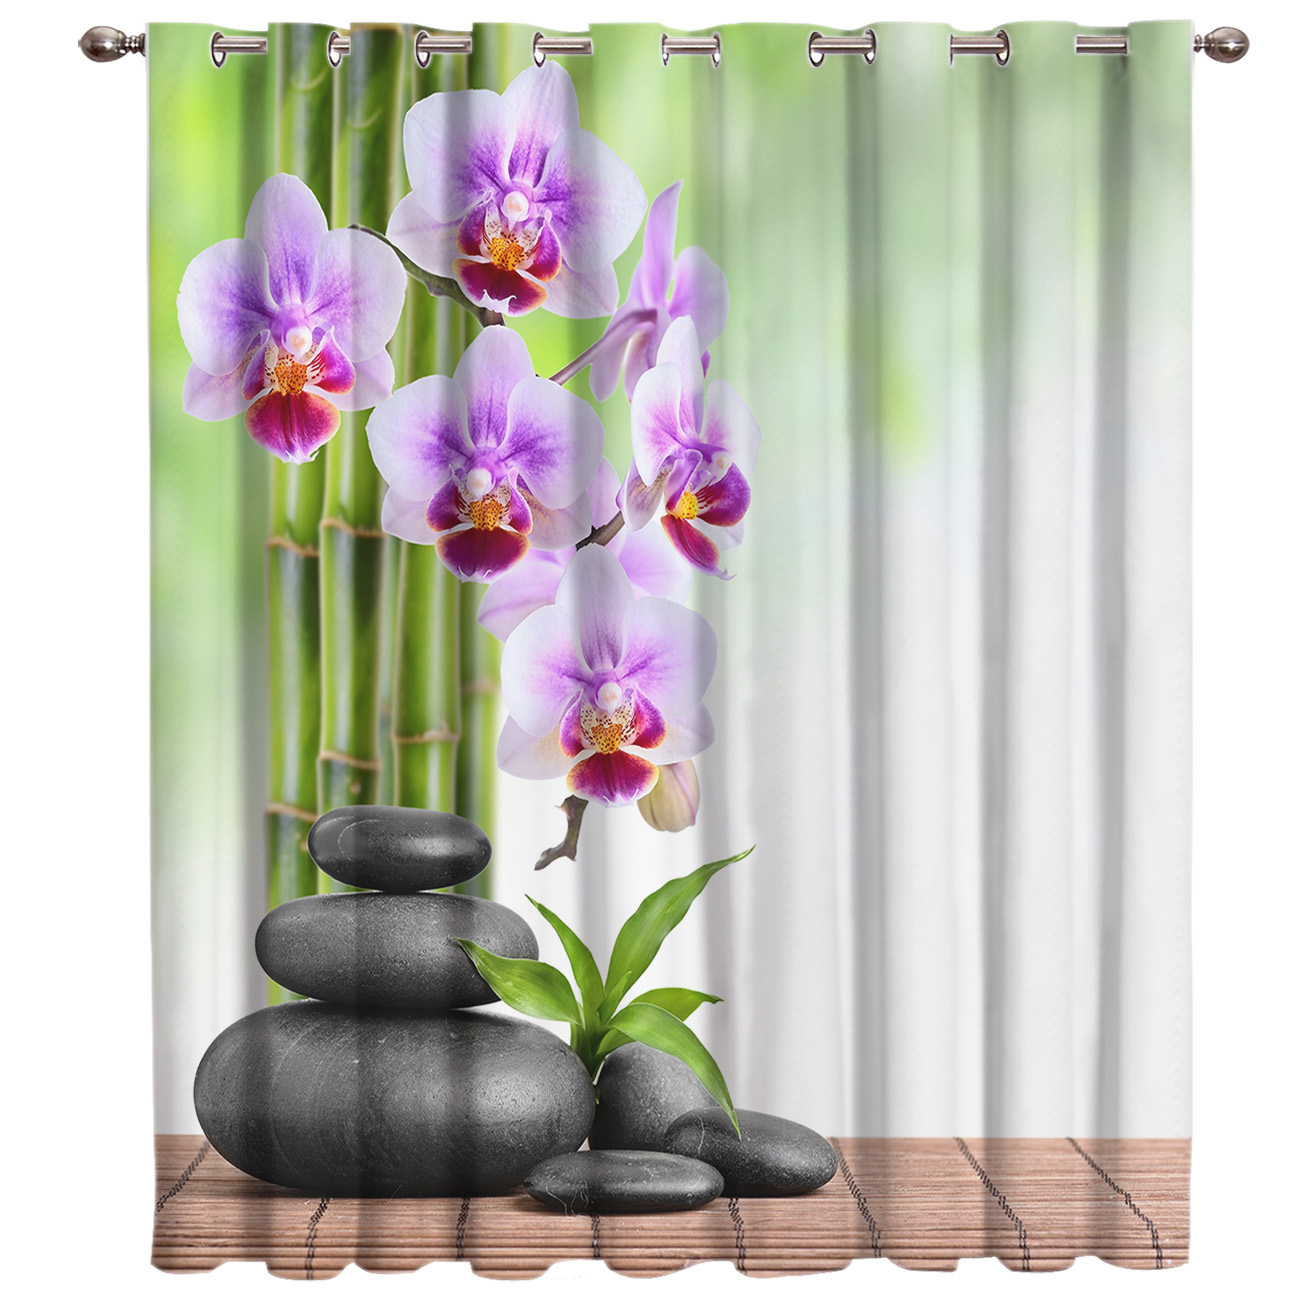 Bamboo Orchid Zen Window Blinds Living Room Bathroom Bedroom Outdoor Decor Print Curtain Panels With Grommets Outdoor Curtains